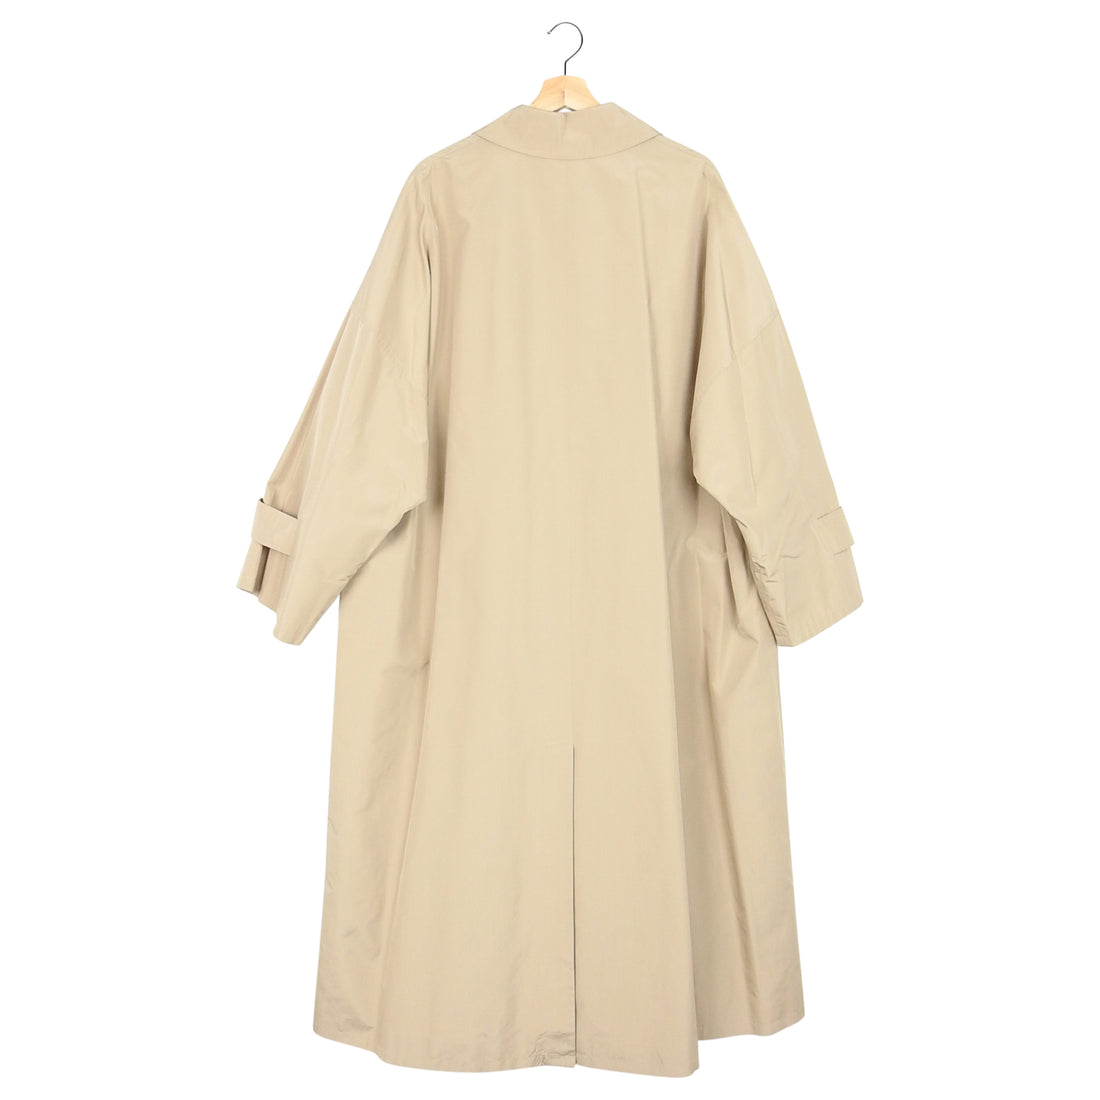 Gucci Beige Light Flare Trench Coat - IT42 / 6